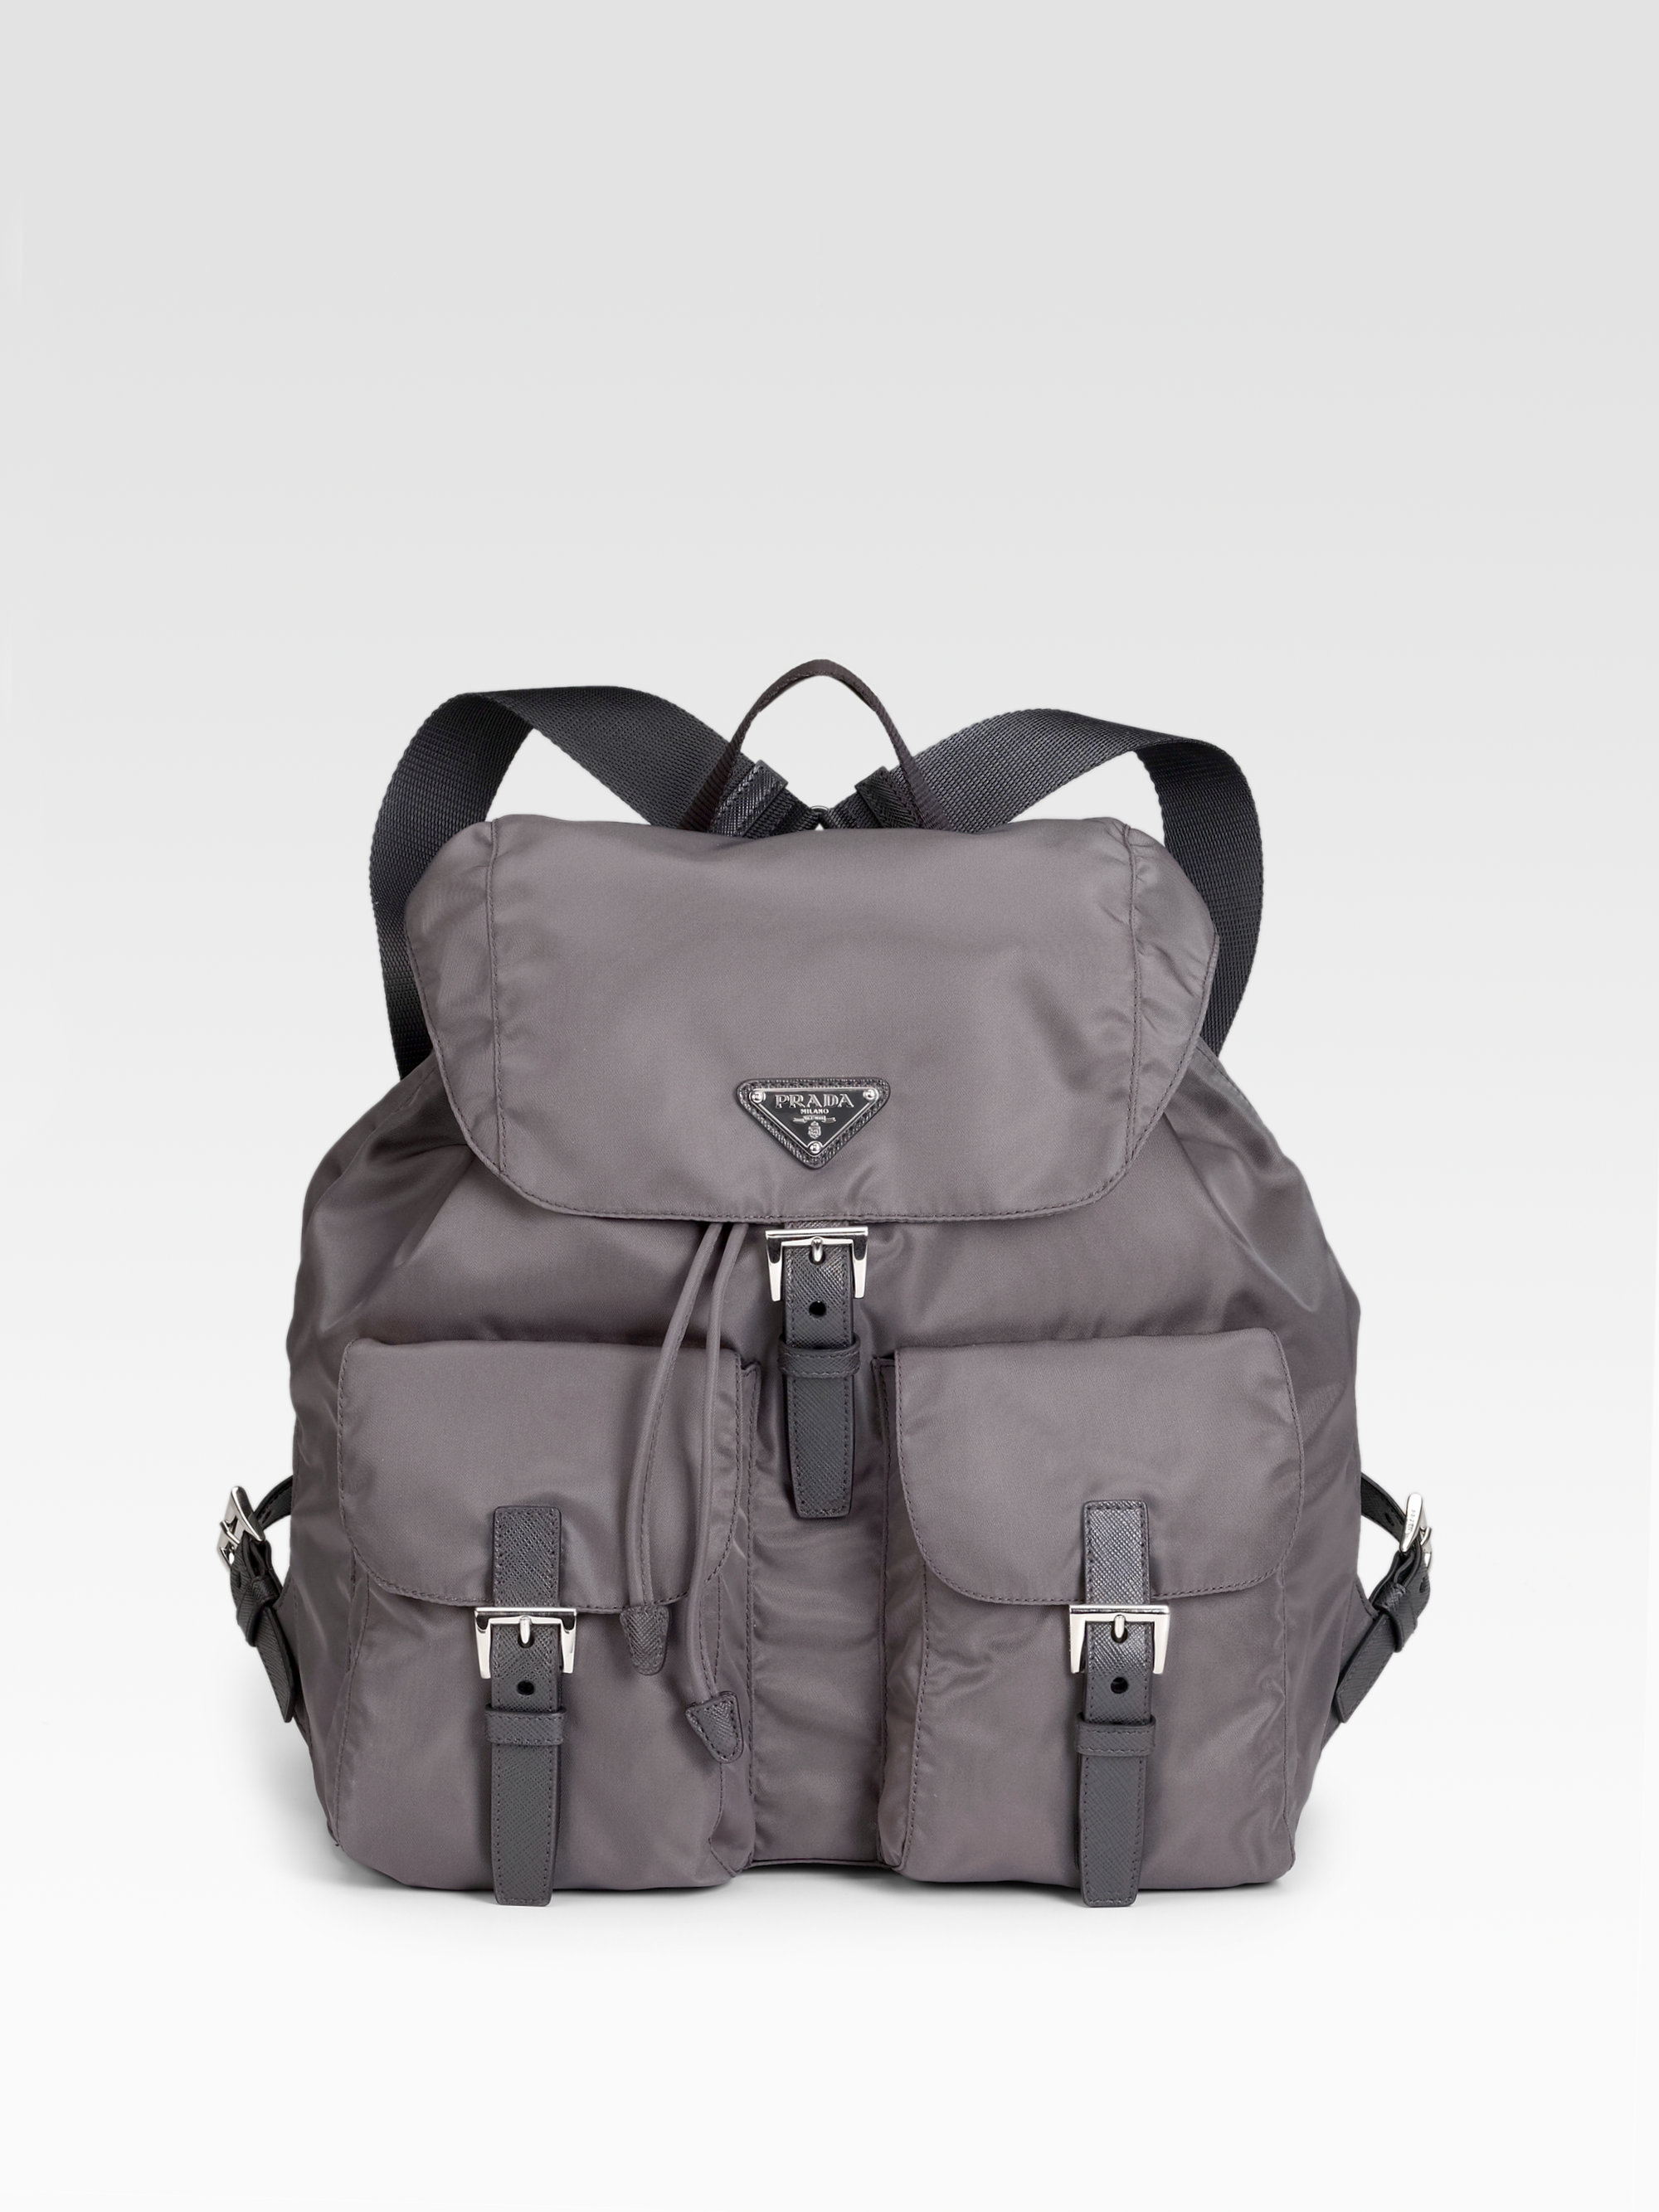 bd2120b8f3c0 ... italy lyst prada vela backpack in gray b2d9f 8da01